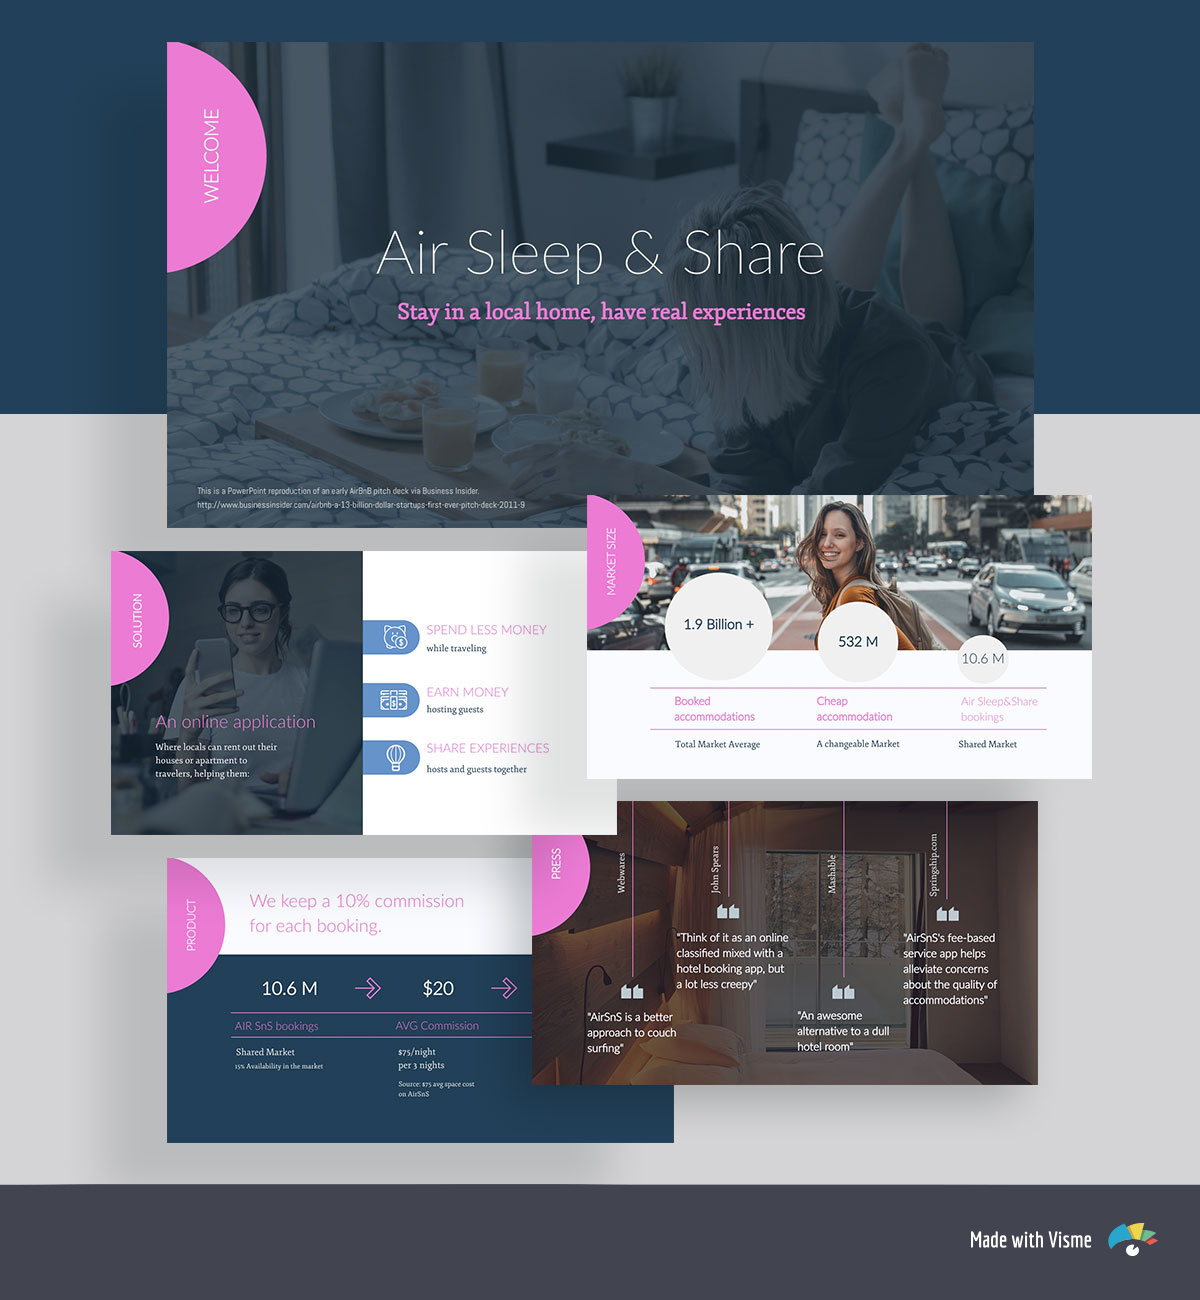 pitch deck template - airbnb airsns